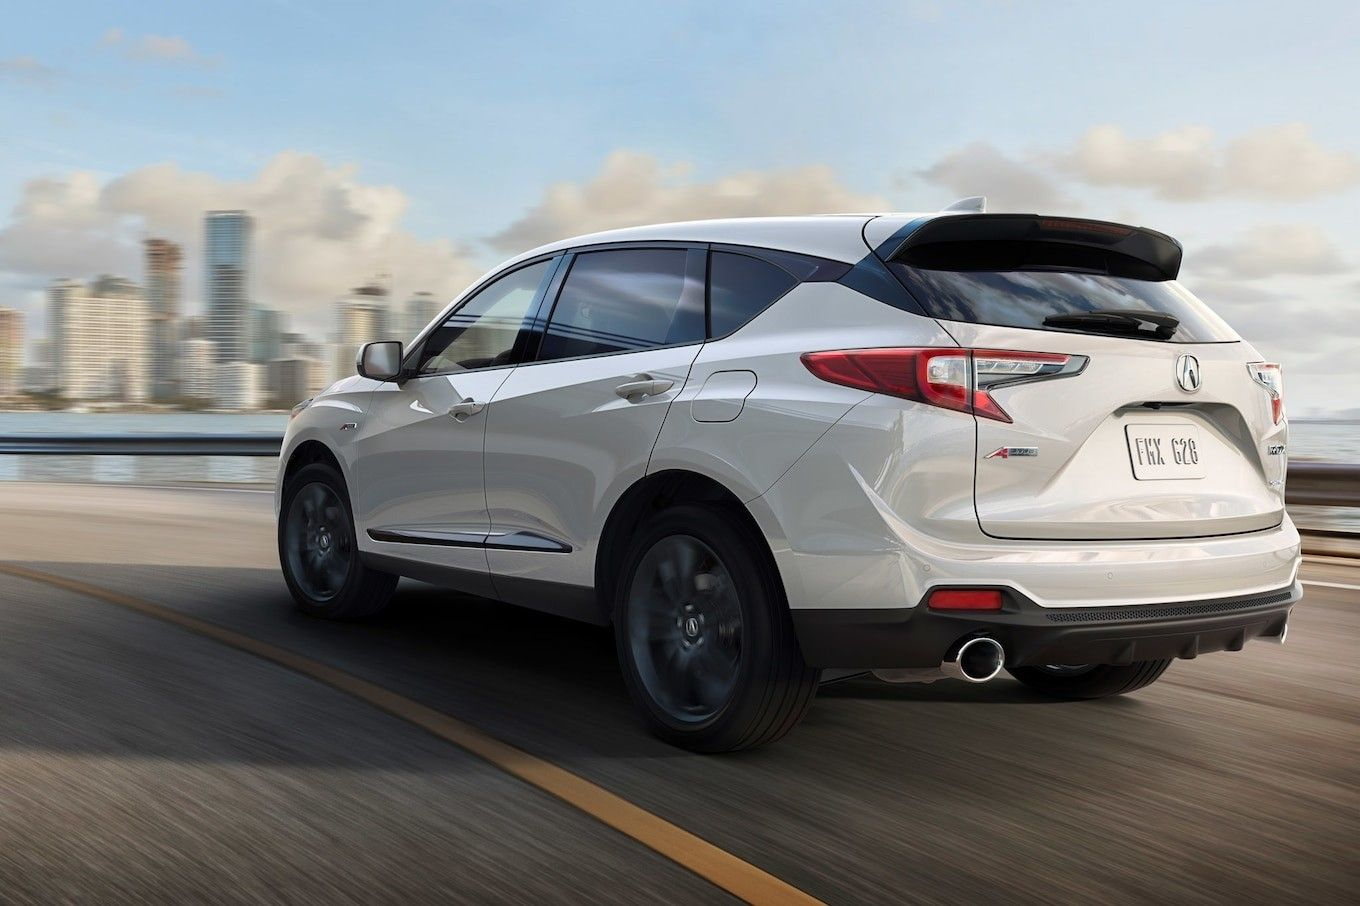 2019 Acura Rdx Review Specs And Release Date Redesign Price And Review Concept Redesign And Review Release Date Pric Acura Rdx Acura Crossover Acura Suv